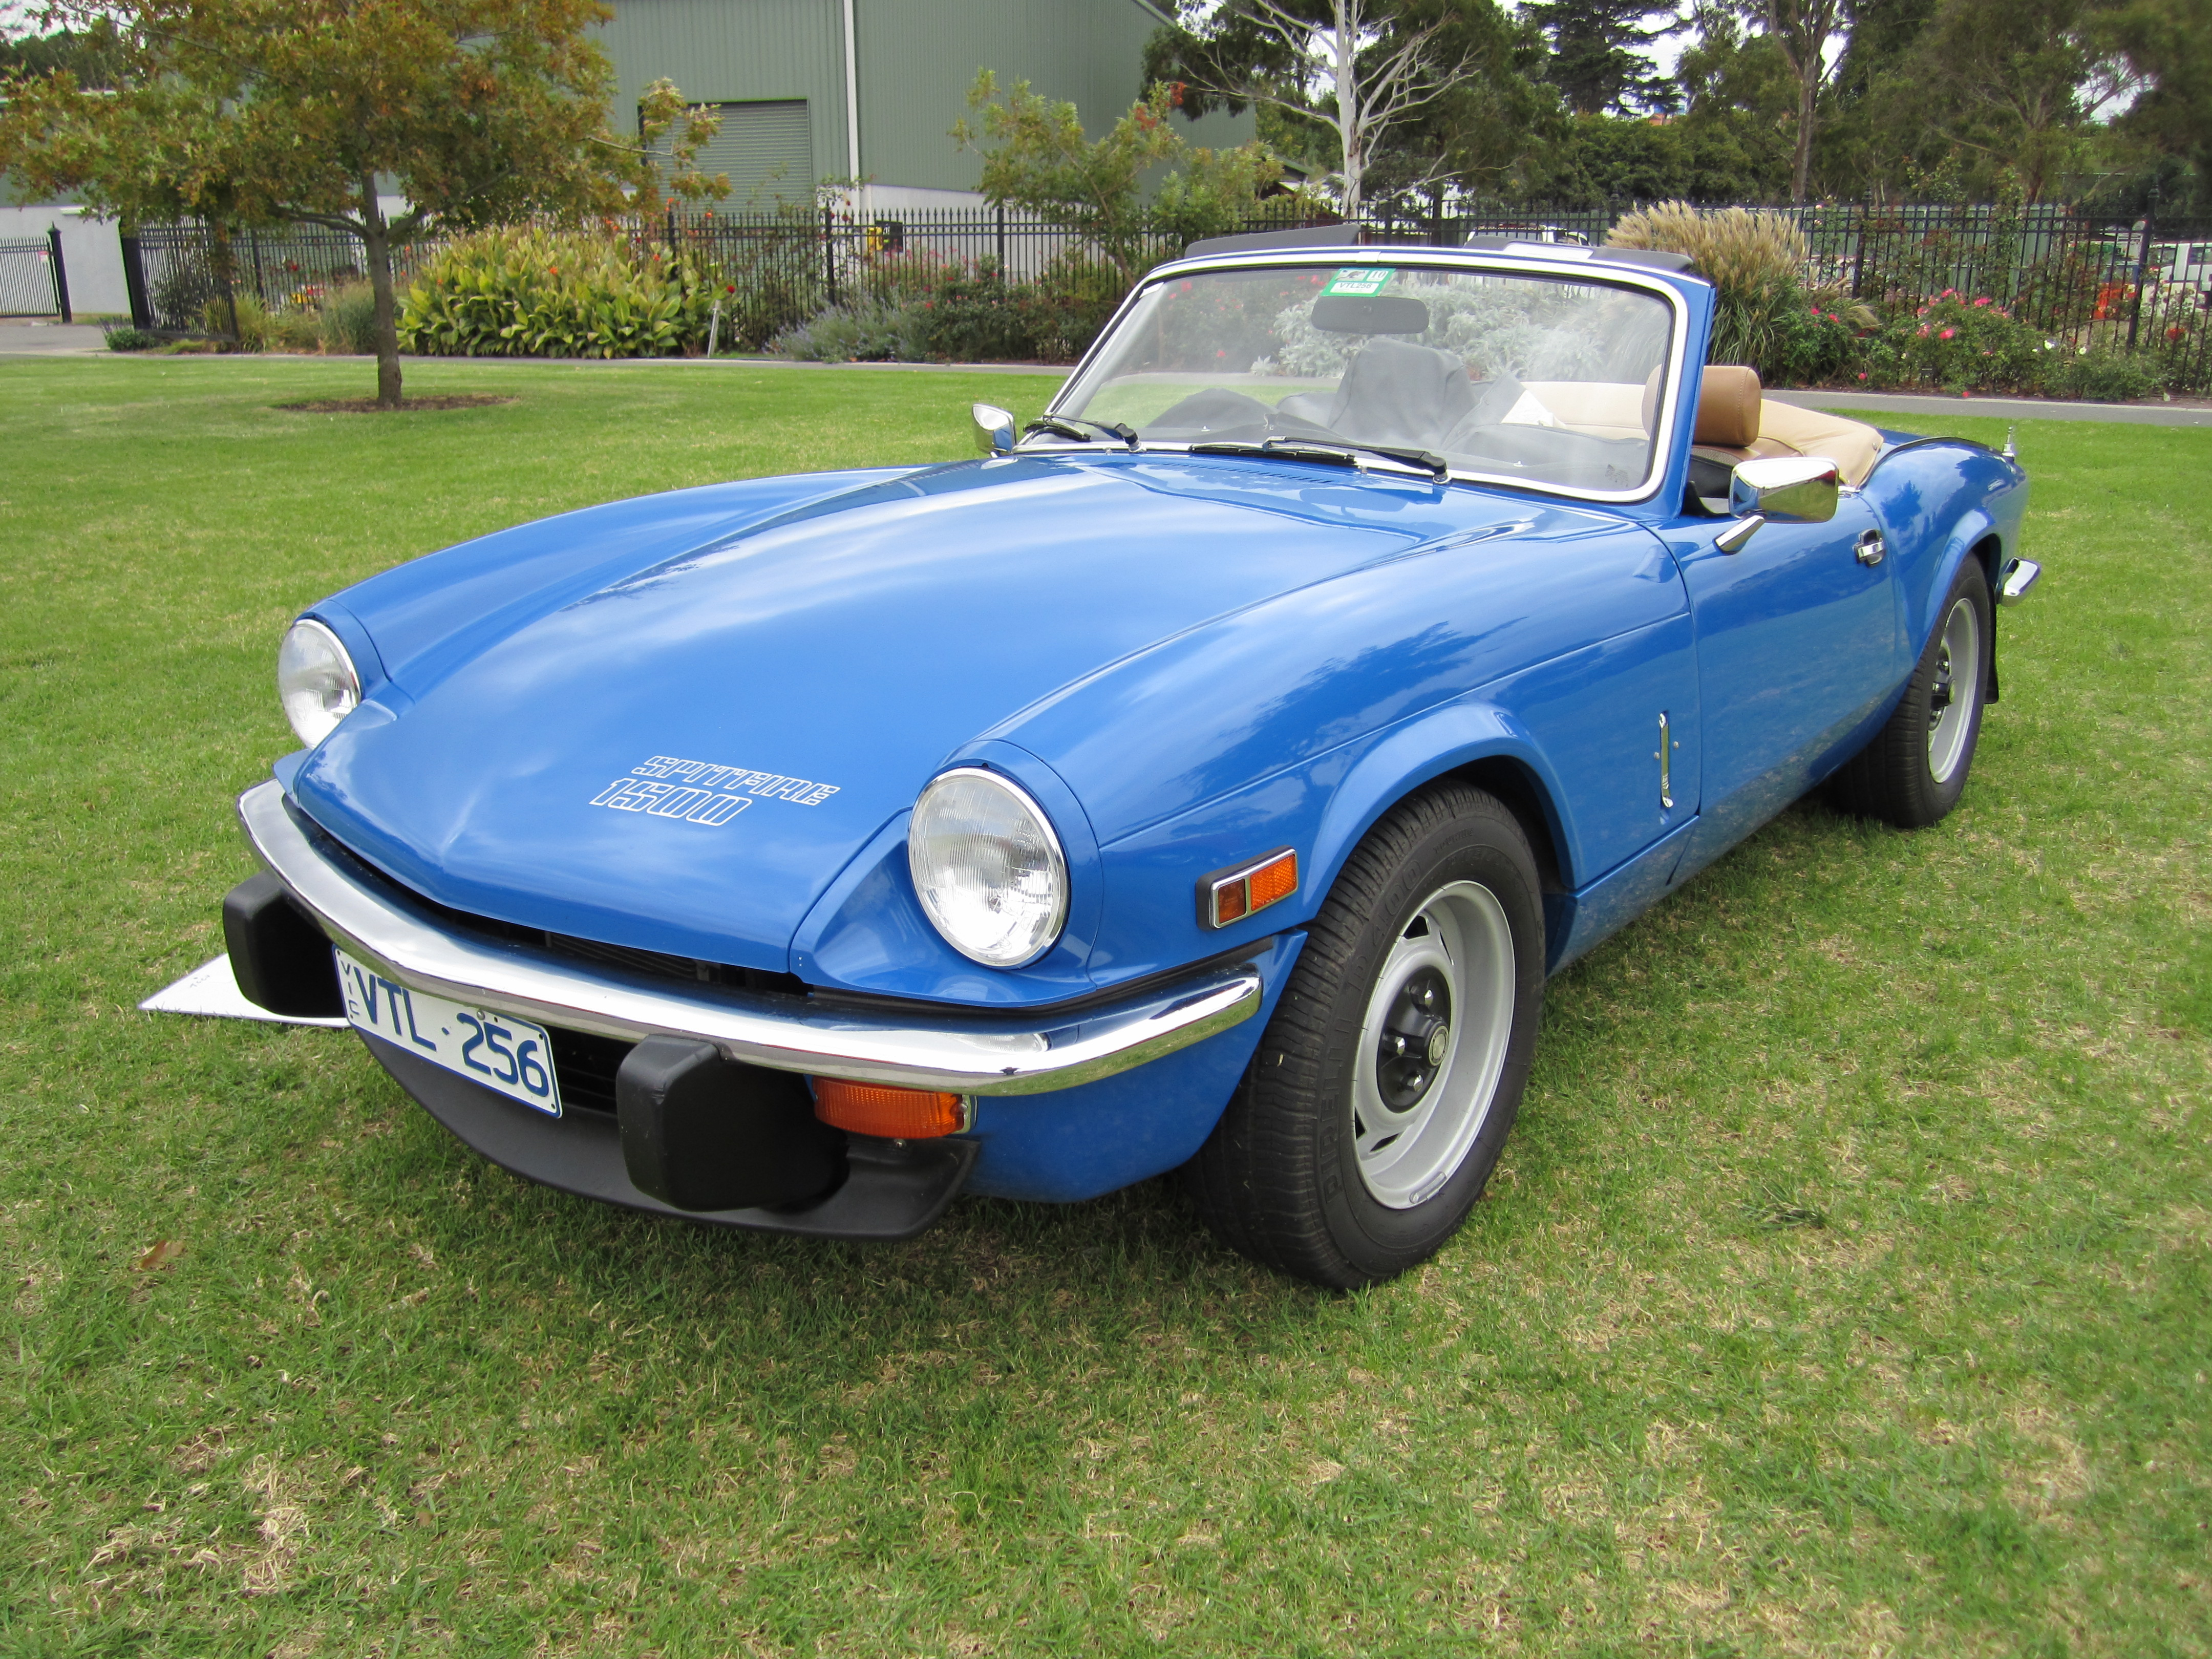 file triumph spitfire 1500 2 jpg wikimedia commons. Black Bedroom Furniture Sets. Home Design Ideas